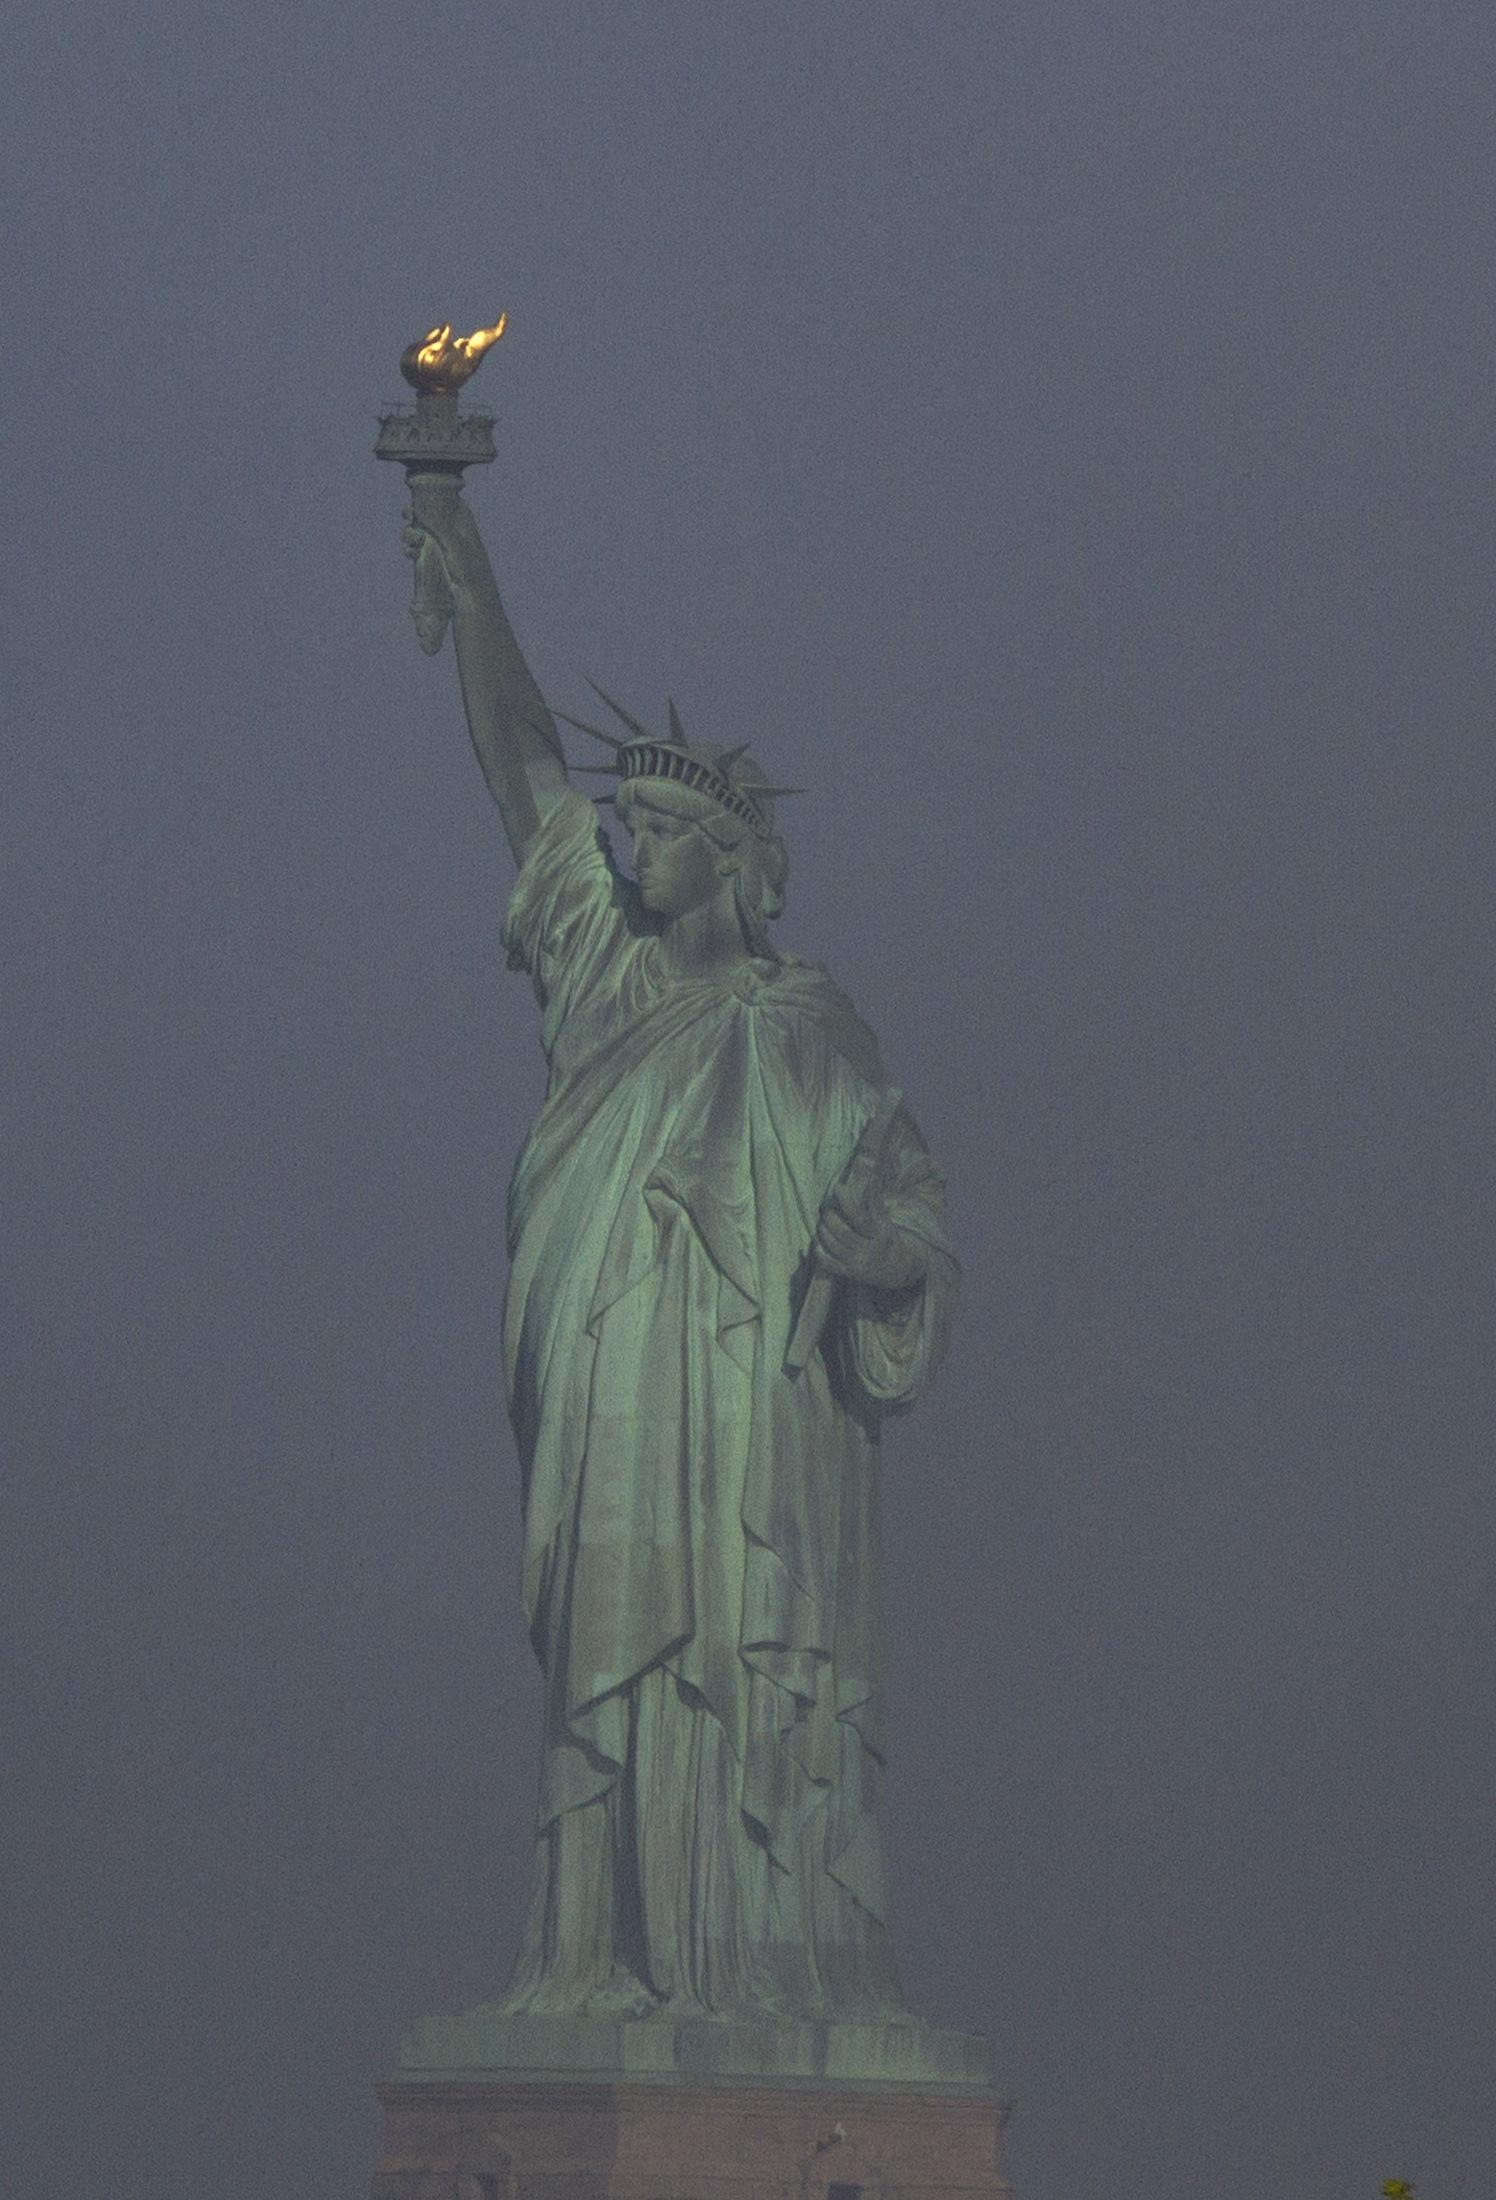 Statue of Liberty-4-June 9, 2013